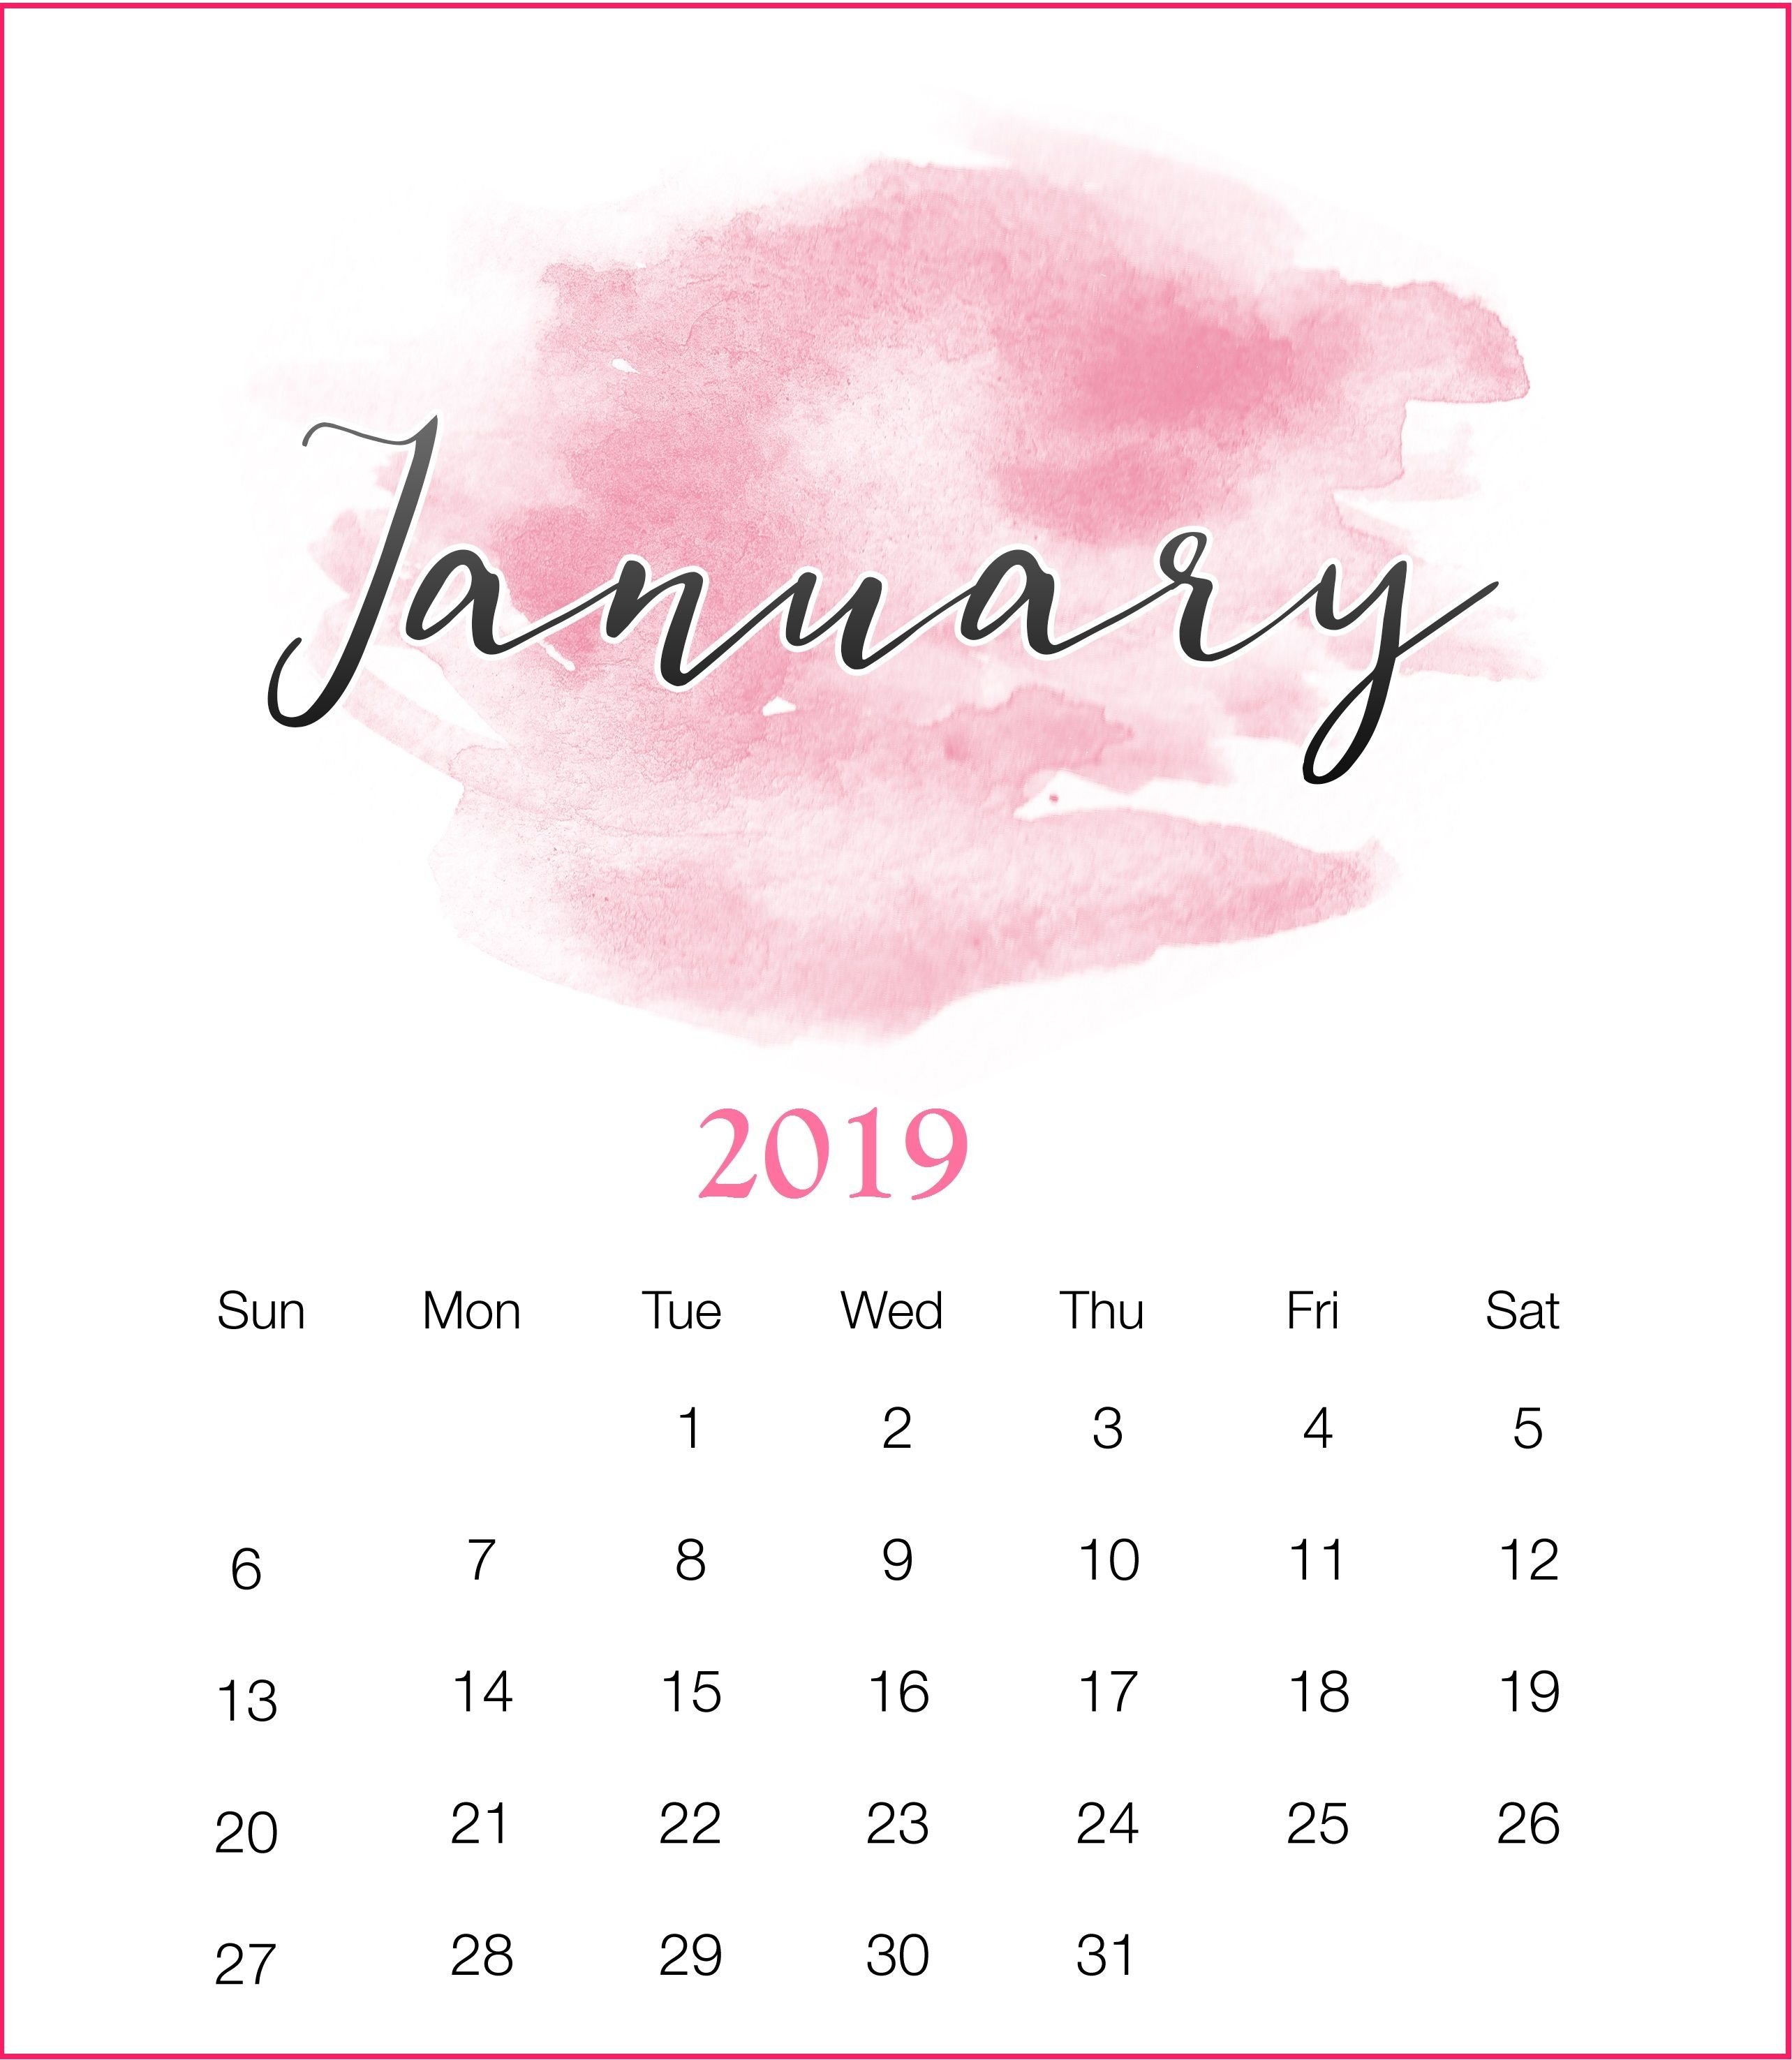 watercolor 2019 january printable calendar january2019 watercolor::January 2019 Calendar Printable Template